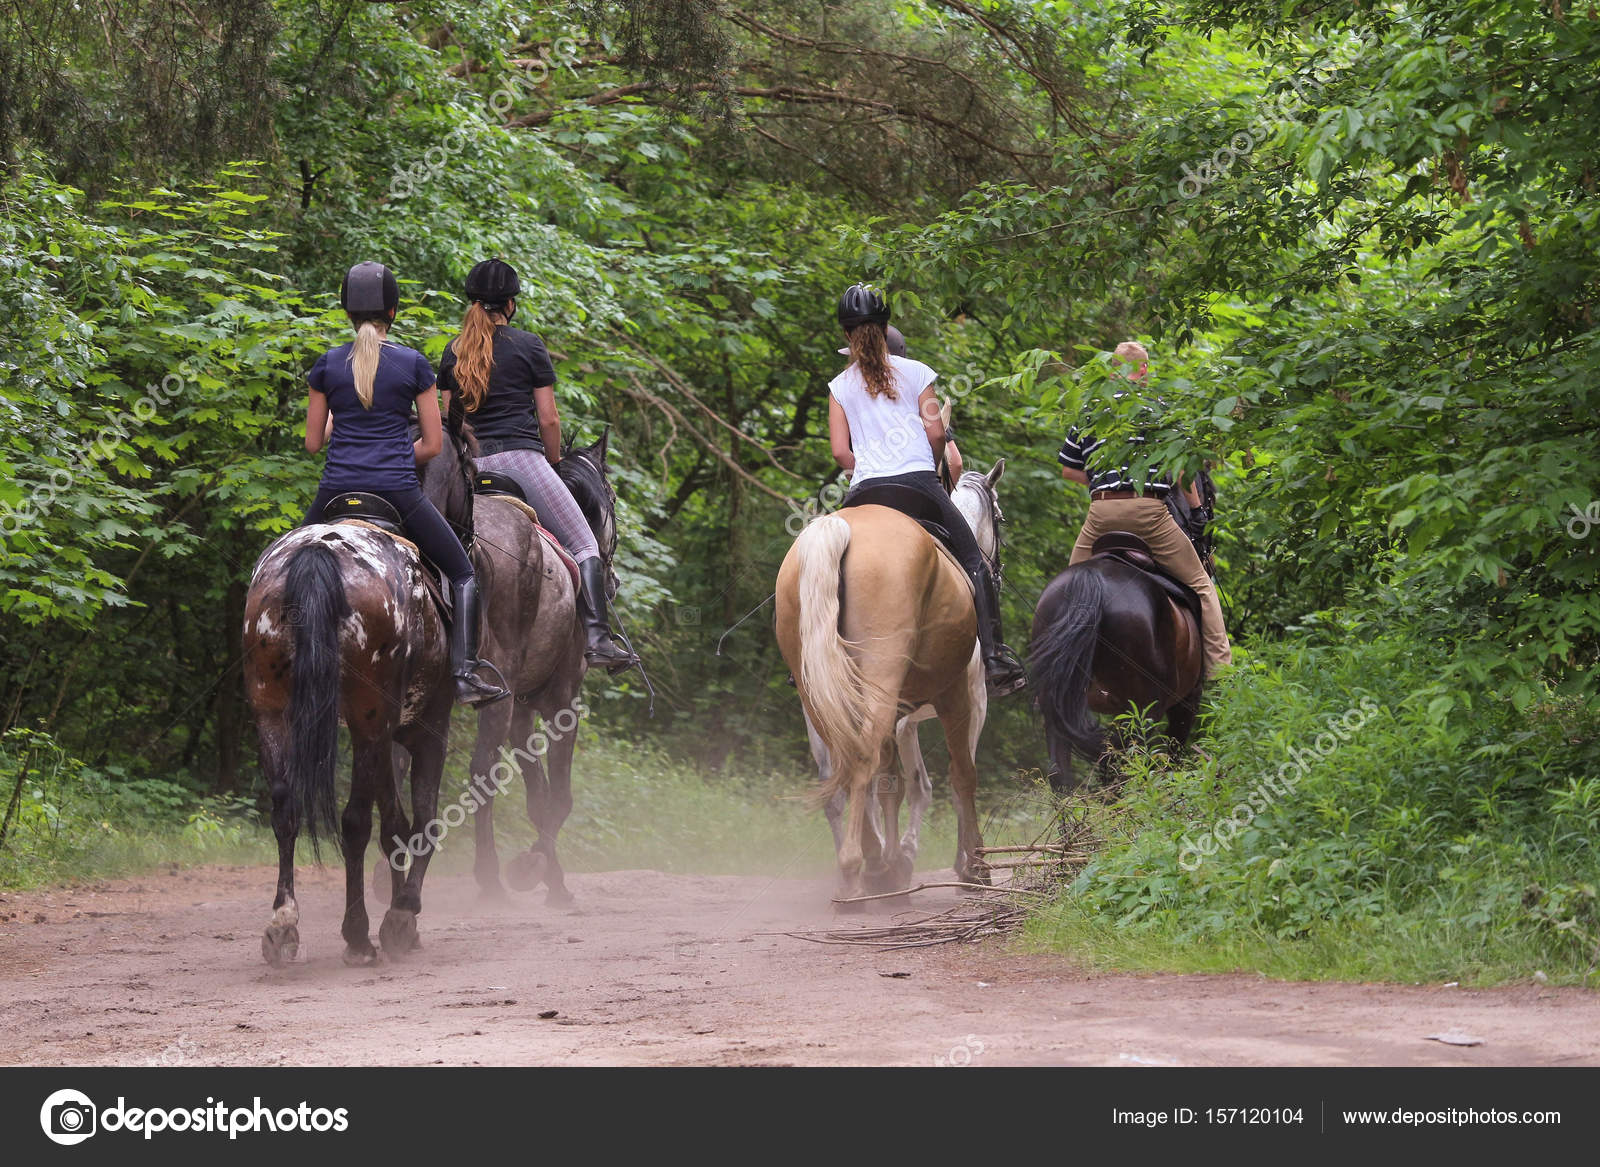 Group Of Friends Riding Horses In The Forest Stock Photo C Wb77 157120104